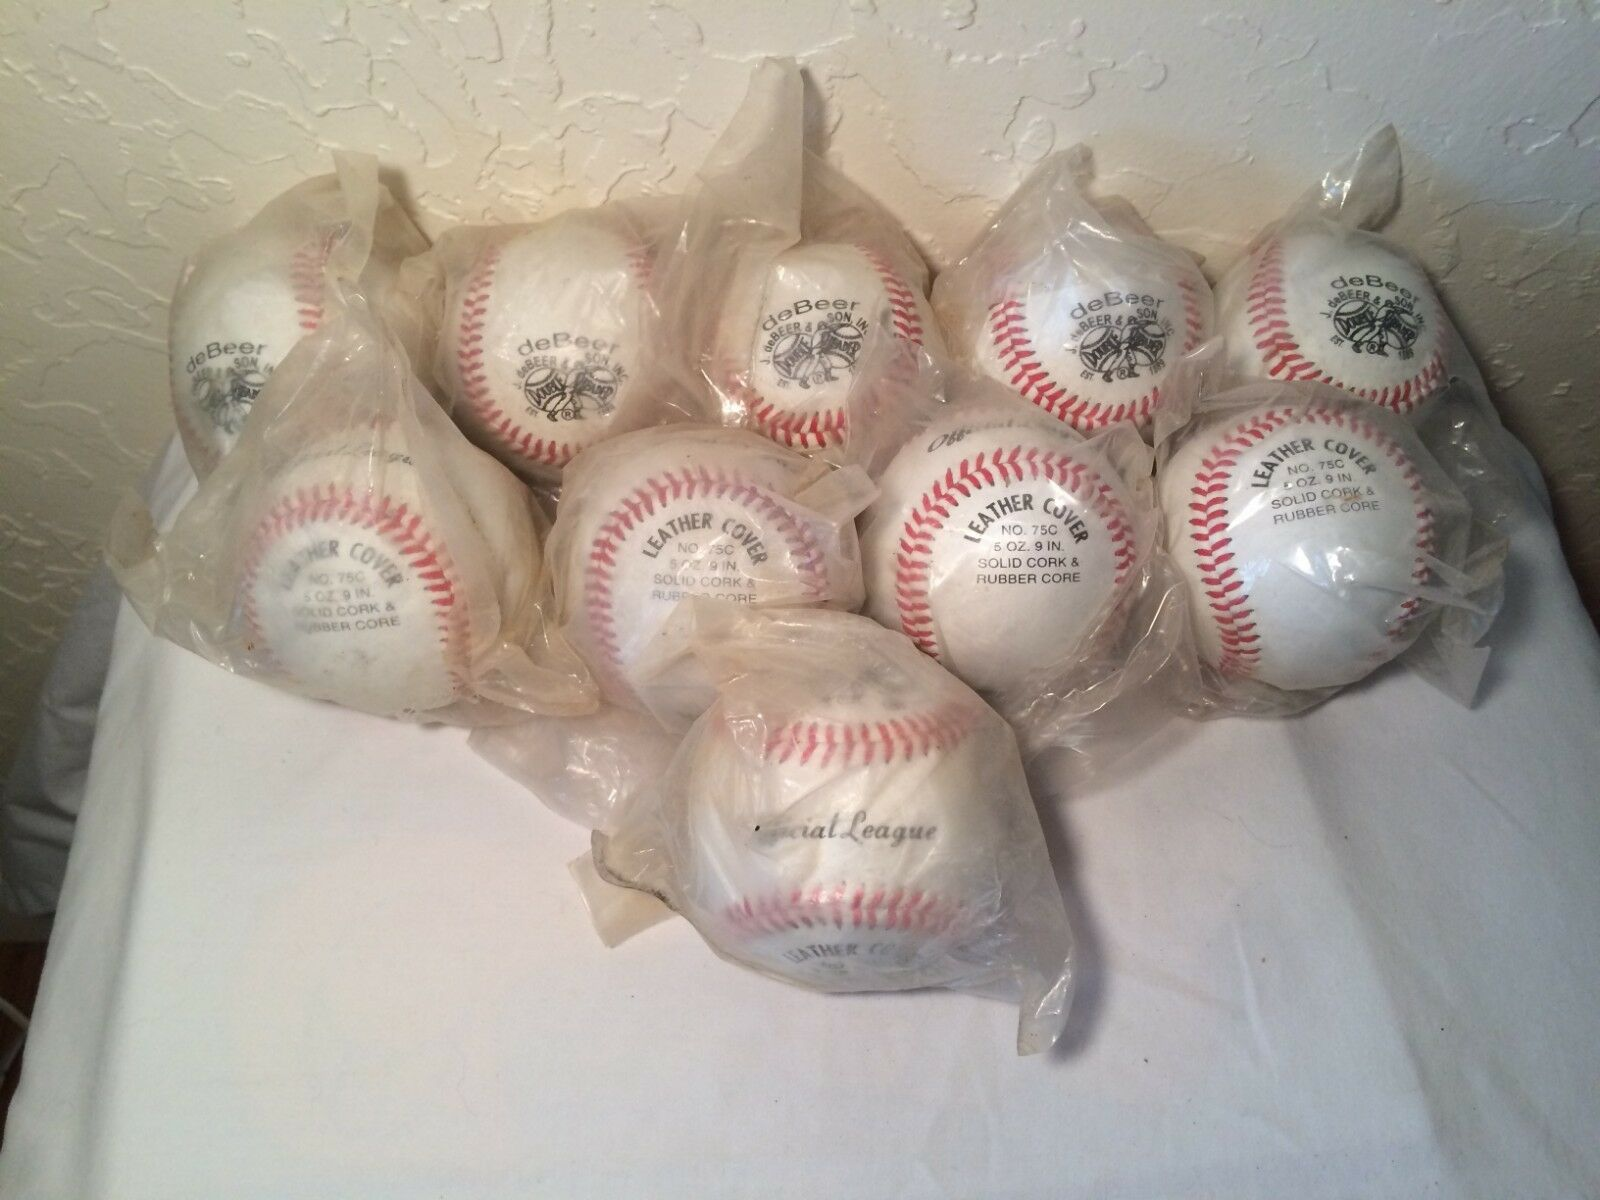 5bc0e4677 10 New Debeer   Double Header Lot Official League 75c Baseball Balls ...